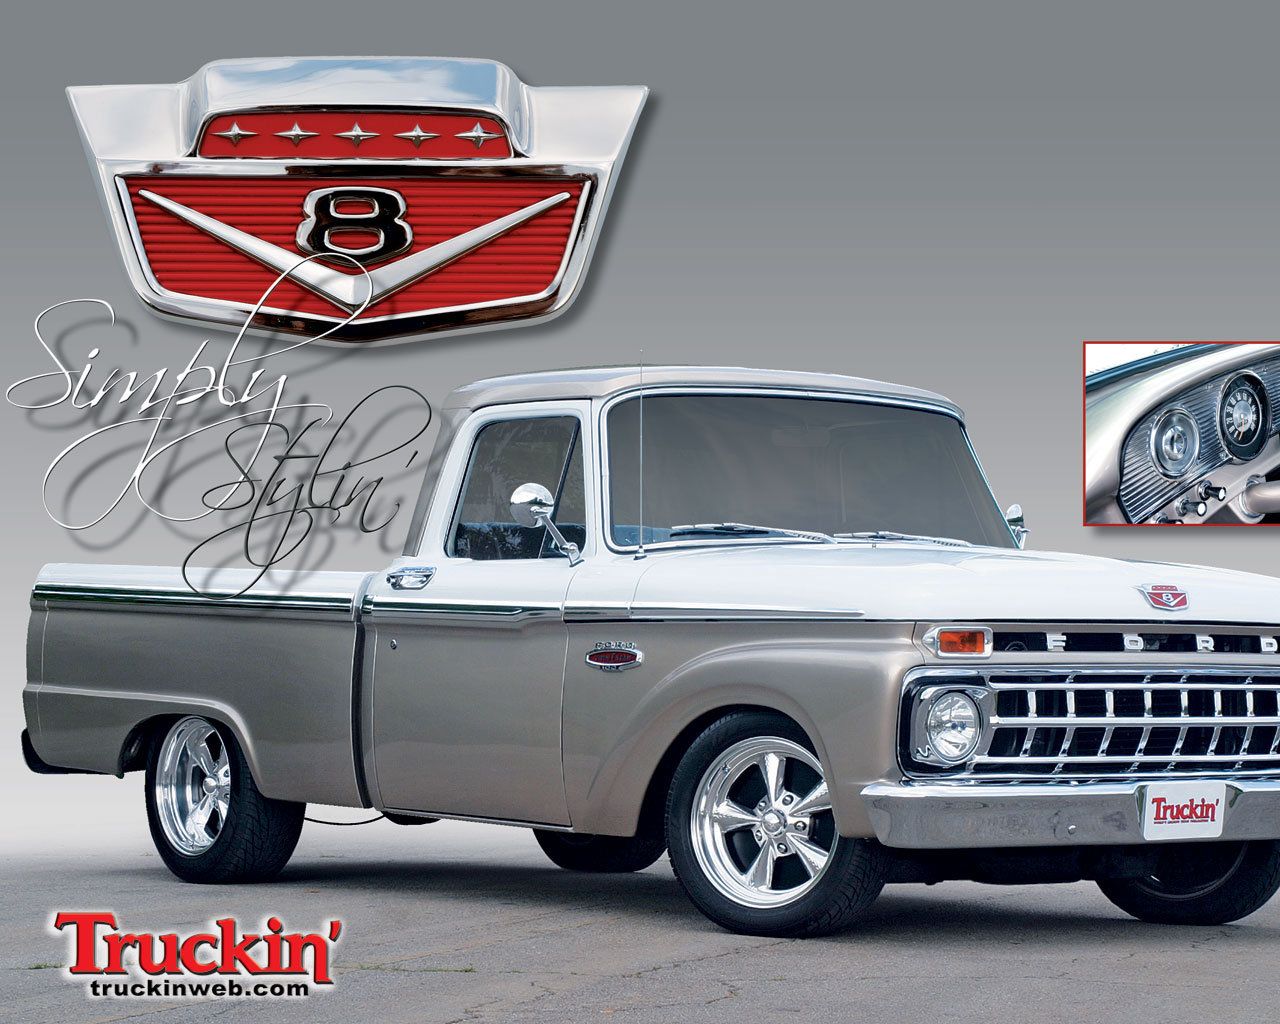 1965 Ford F100 Wallpaper and Background Image 1280x1024 ID 1280x1024